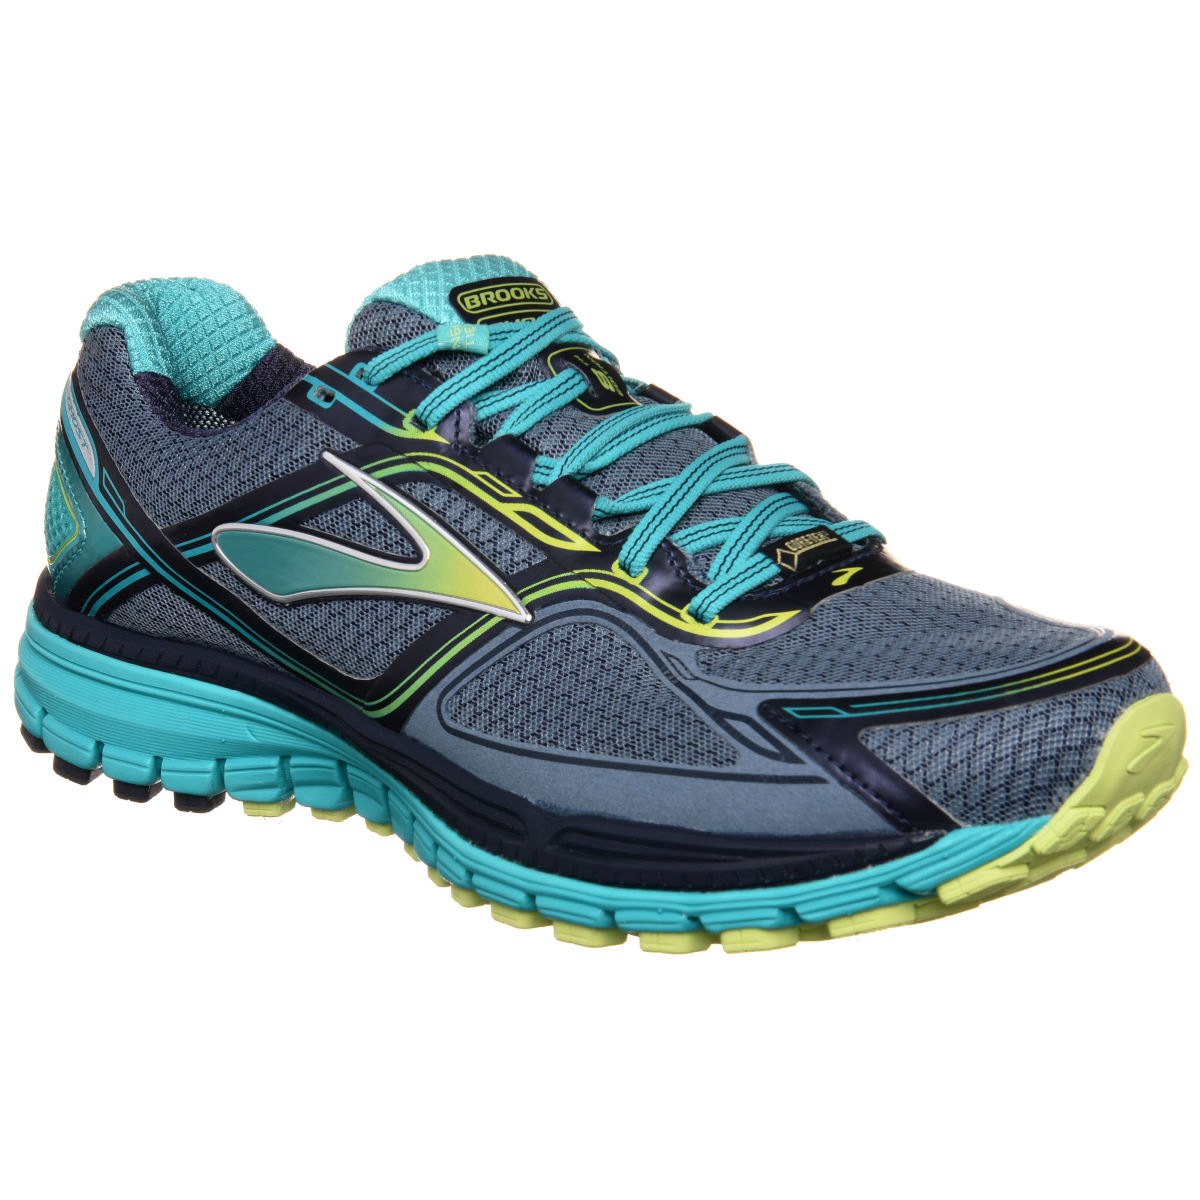 Chaussures Femme Brooks Ghost 8 GTX - UK 4 Storm/SharpGreen/Cer Chaussures de running amorties